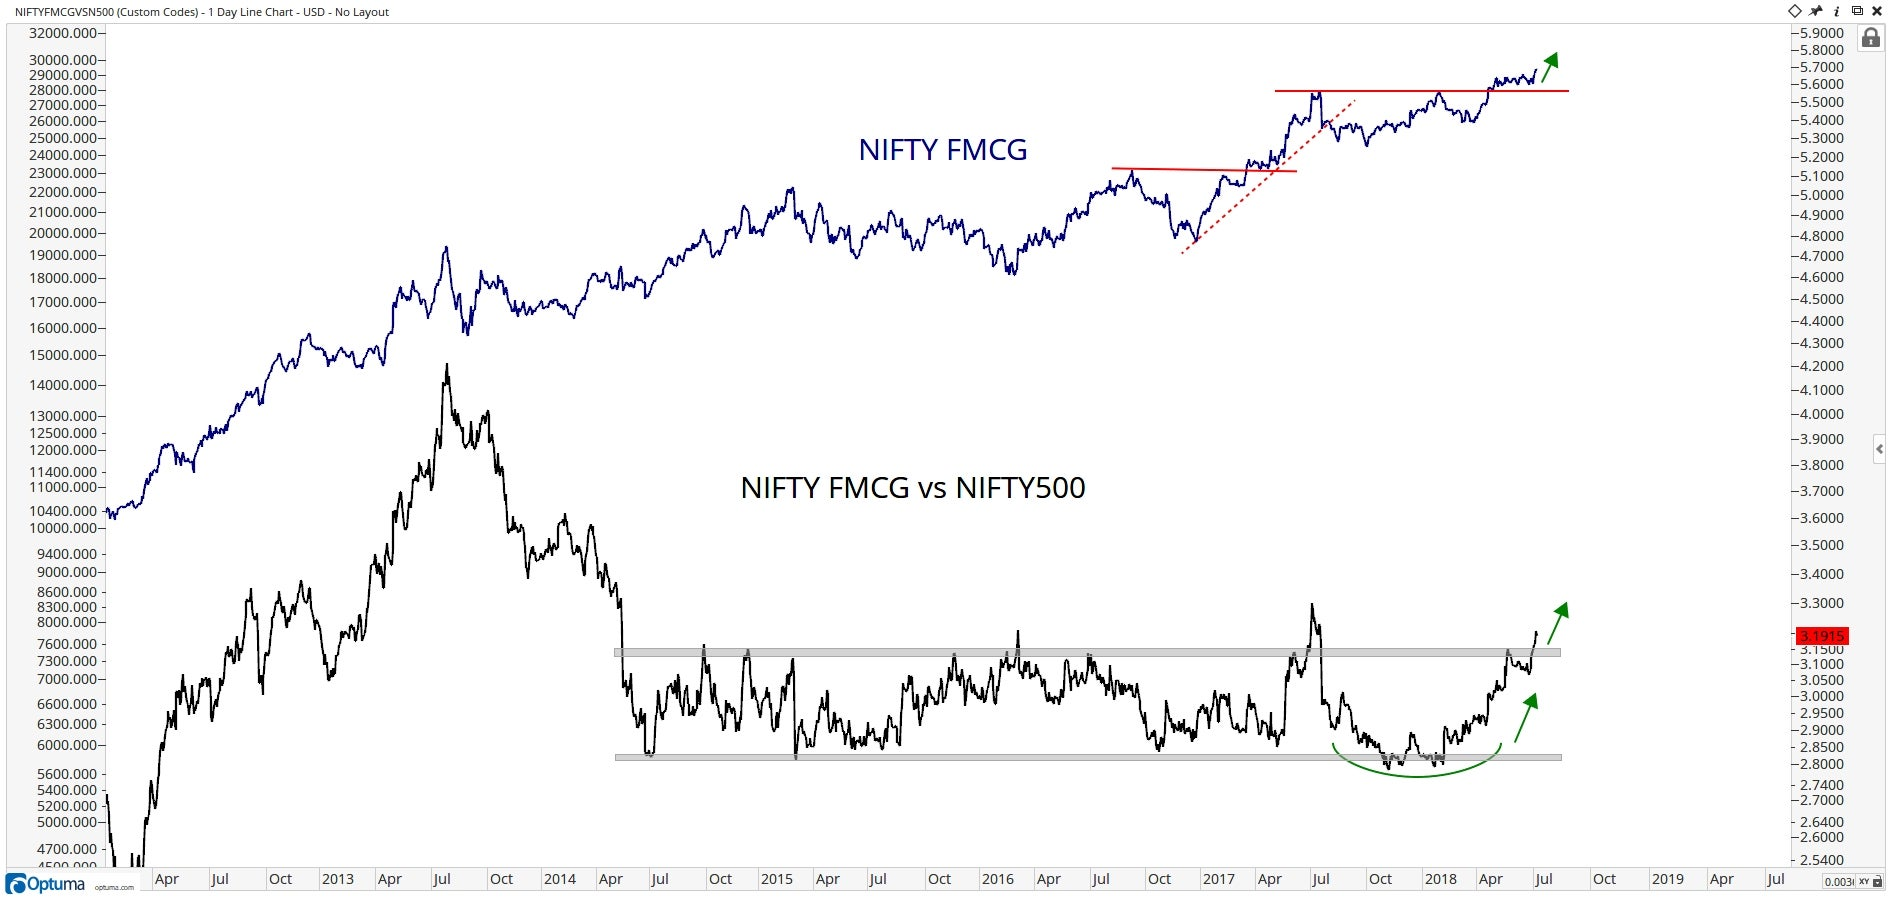 Chart showing performance of Nifty FMCG vs. Nifty 500